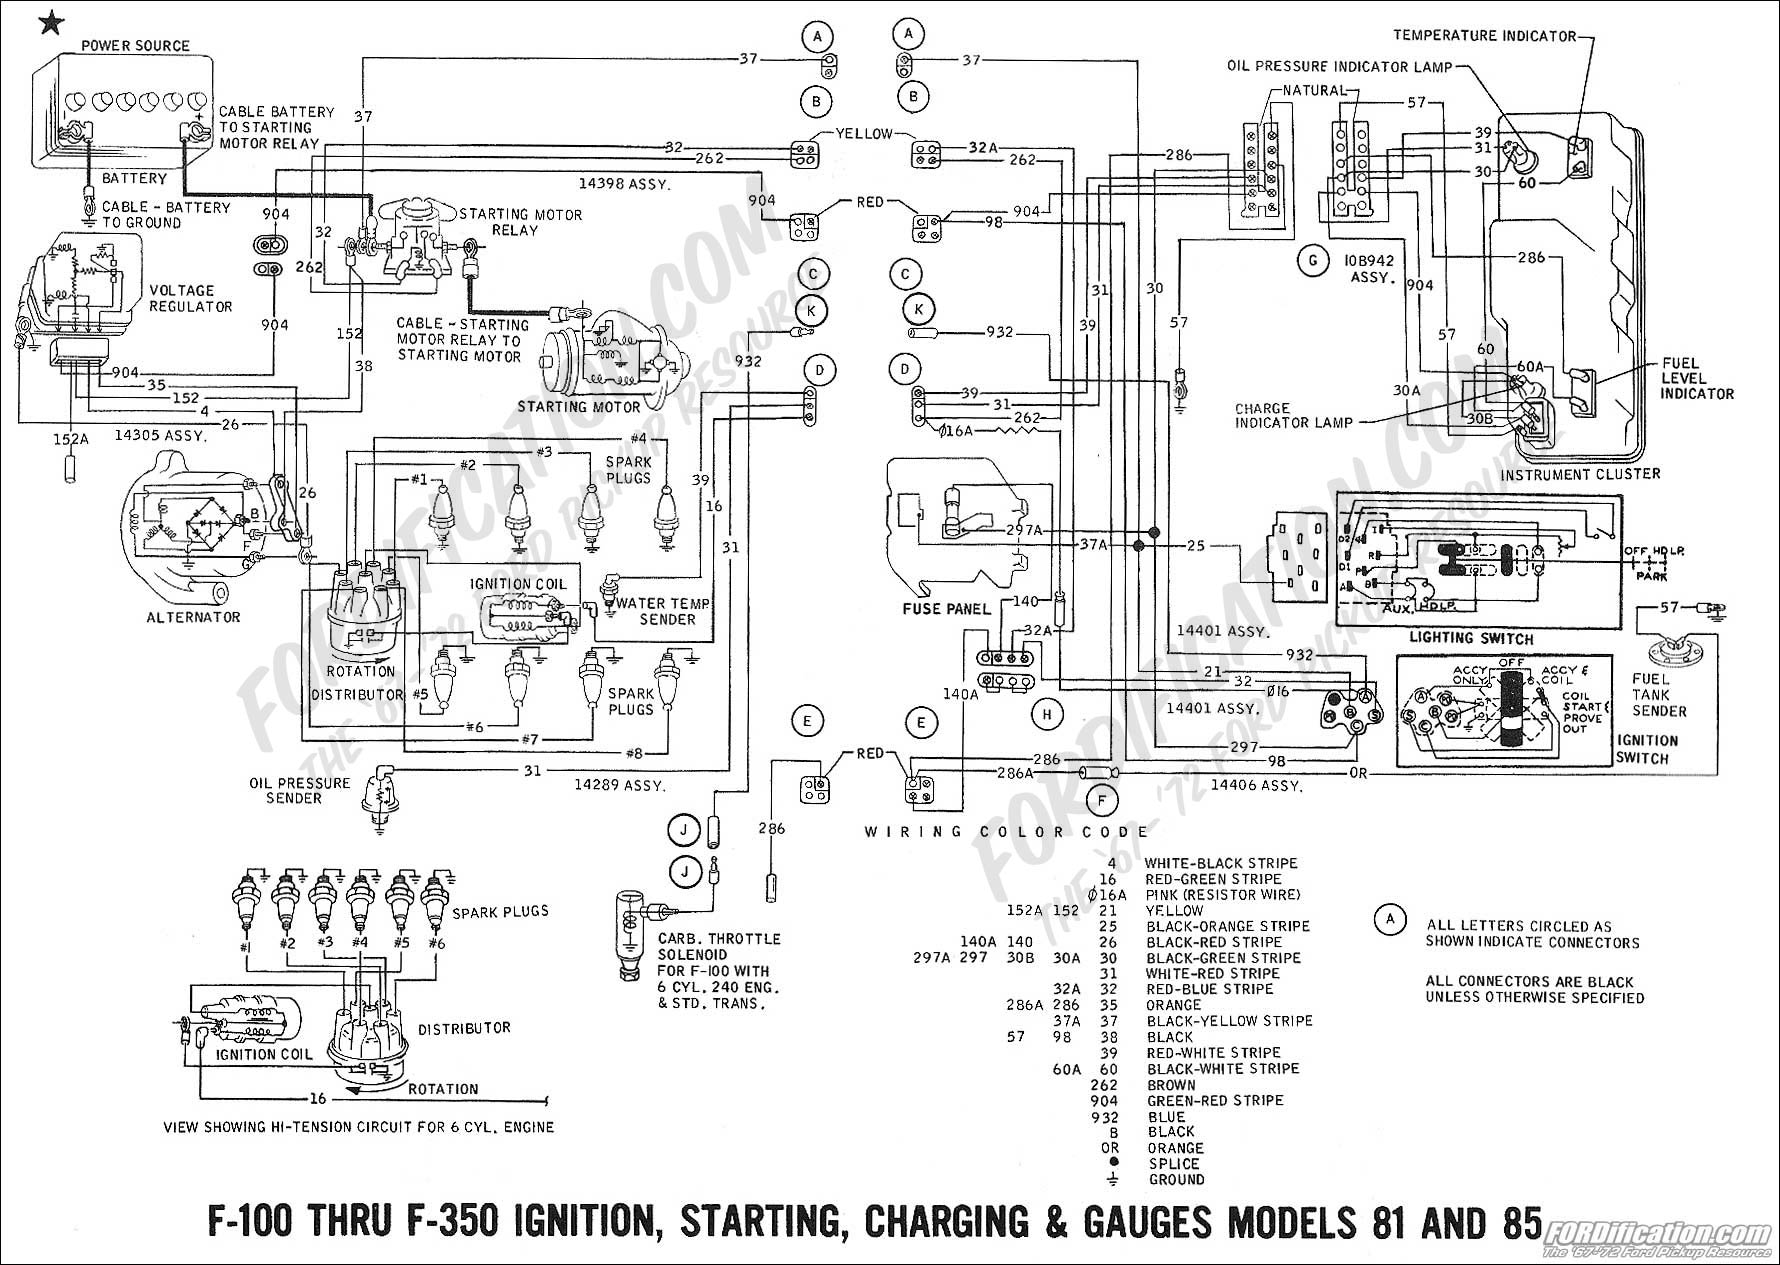 wiring diagram as well 1931 ford pickup truck on 1969 corvette power rh sellfie co